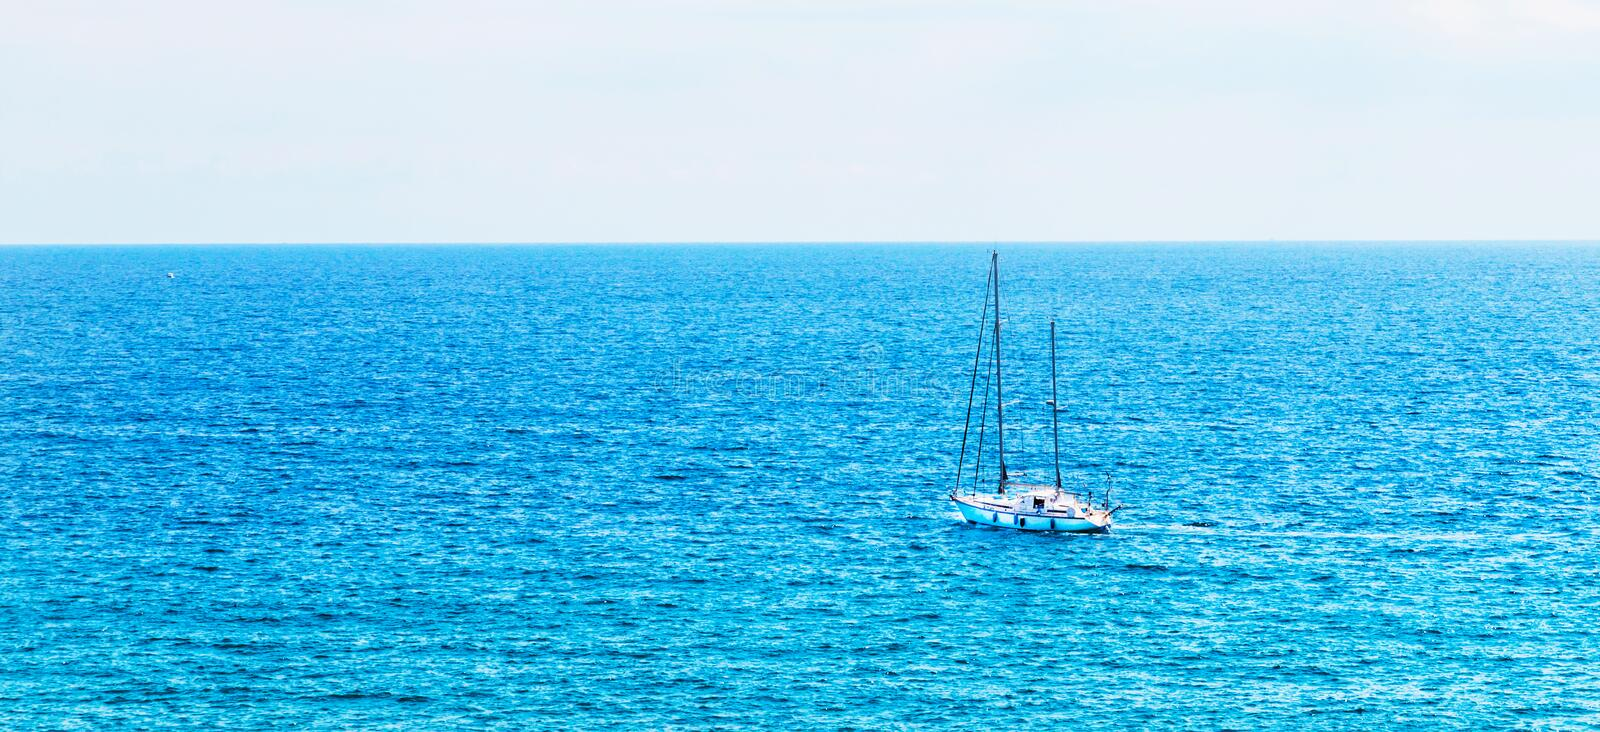 Yacht sailing the sea, clear sky and blue water, recreational sp stock photos